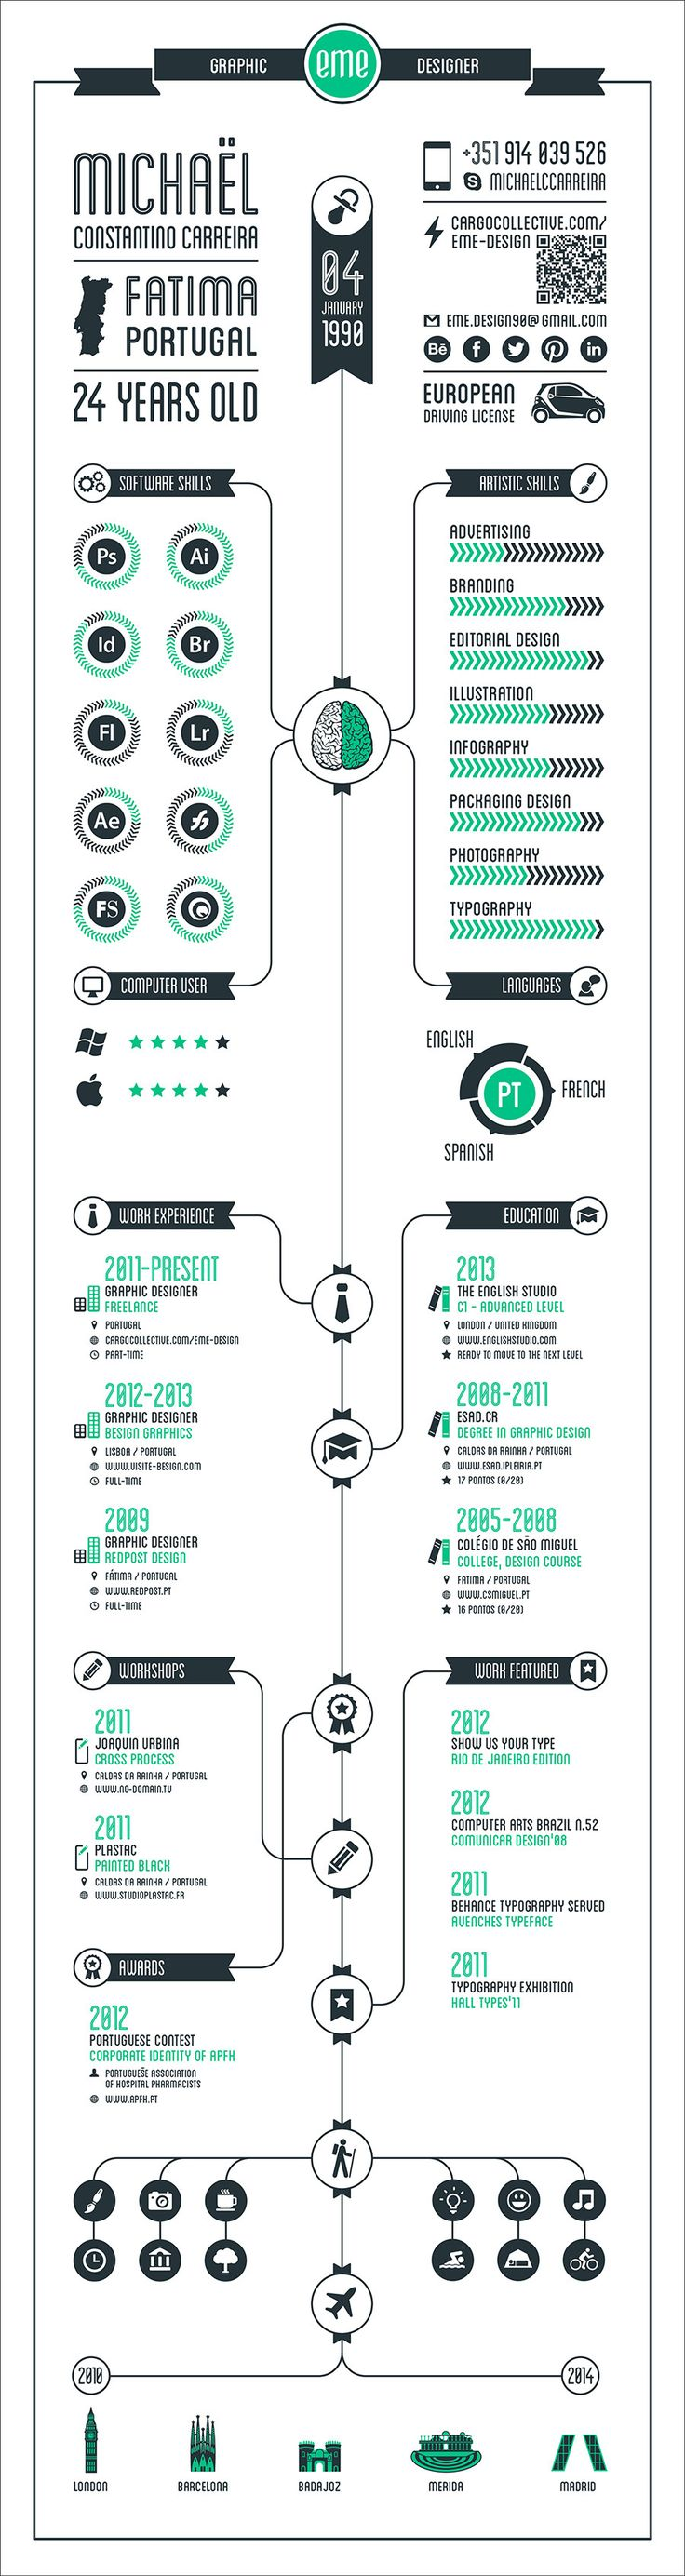 best ideas about my cv creative cv design this infography it s my cv my habilities and experience as designer